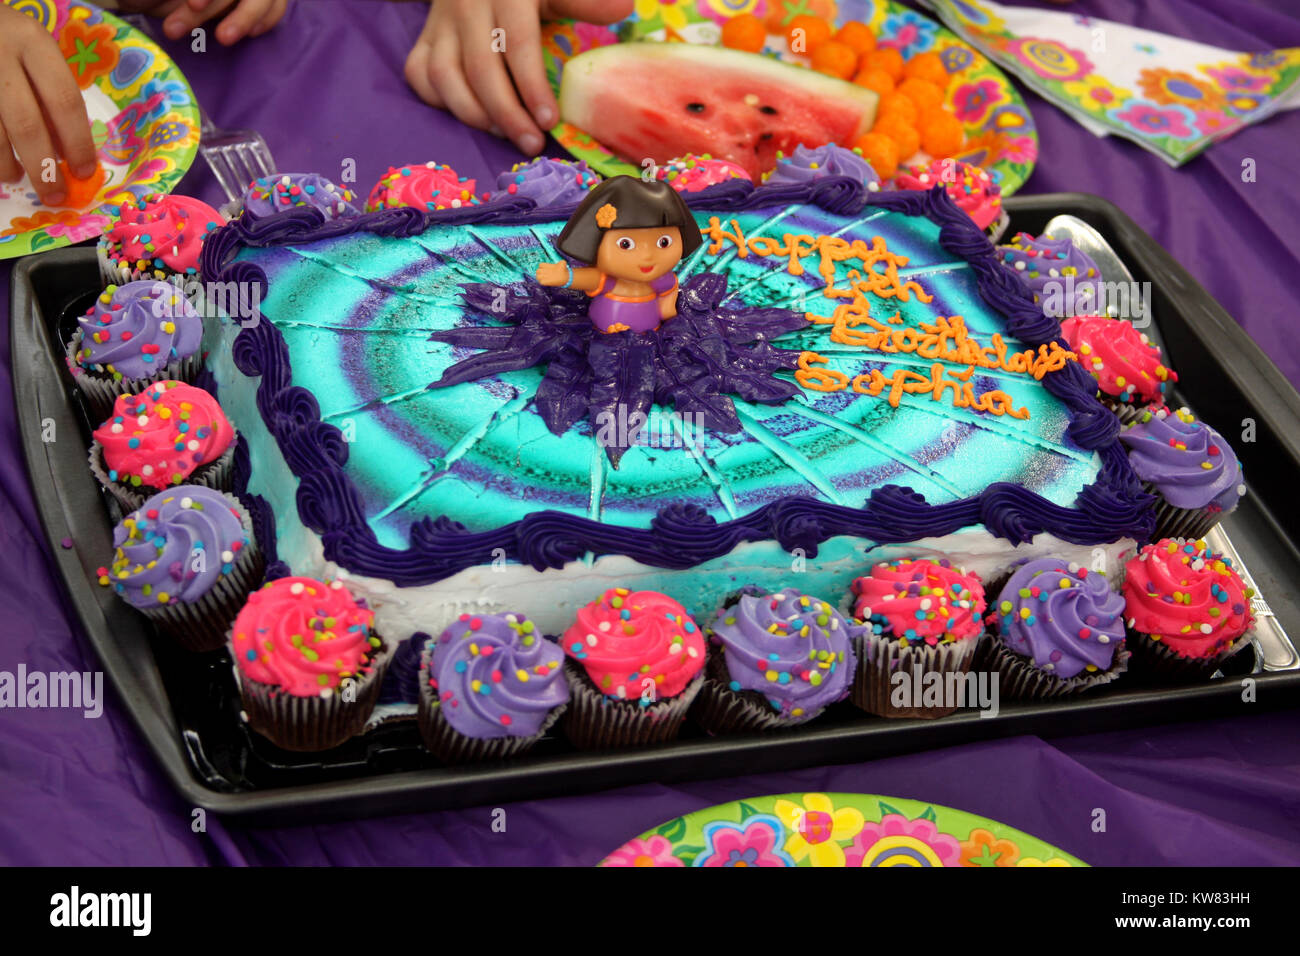 Amazing Dora The Explorer Birthday Cake Stock Photo 170438173 Alamy Funny Birthday Cards Online Alyptdamsfinfo